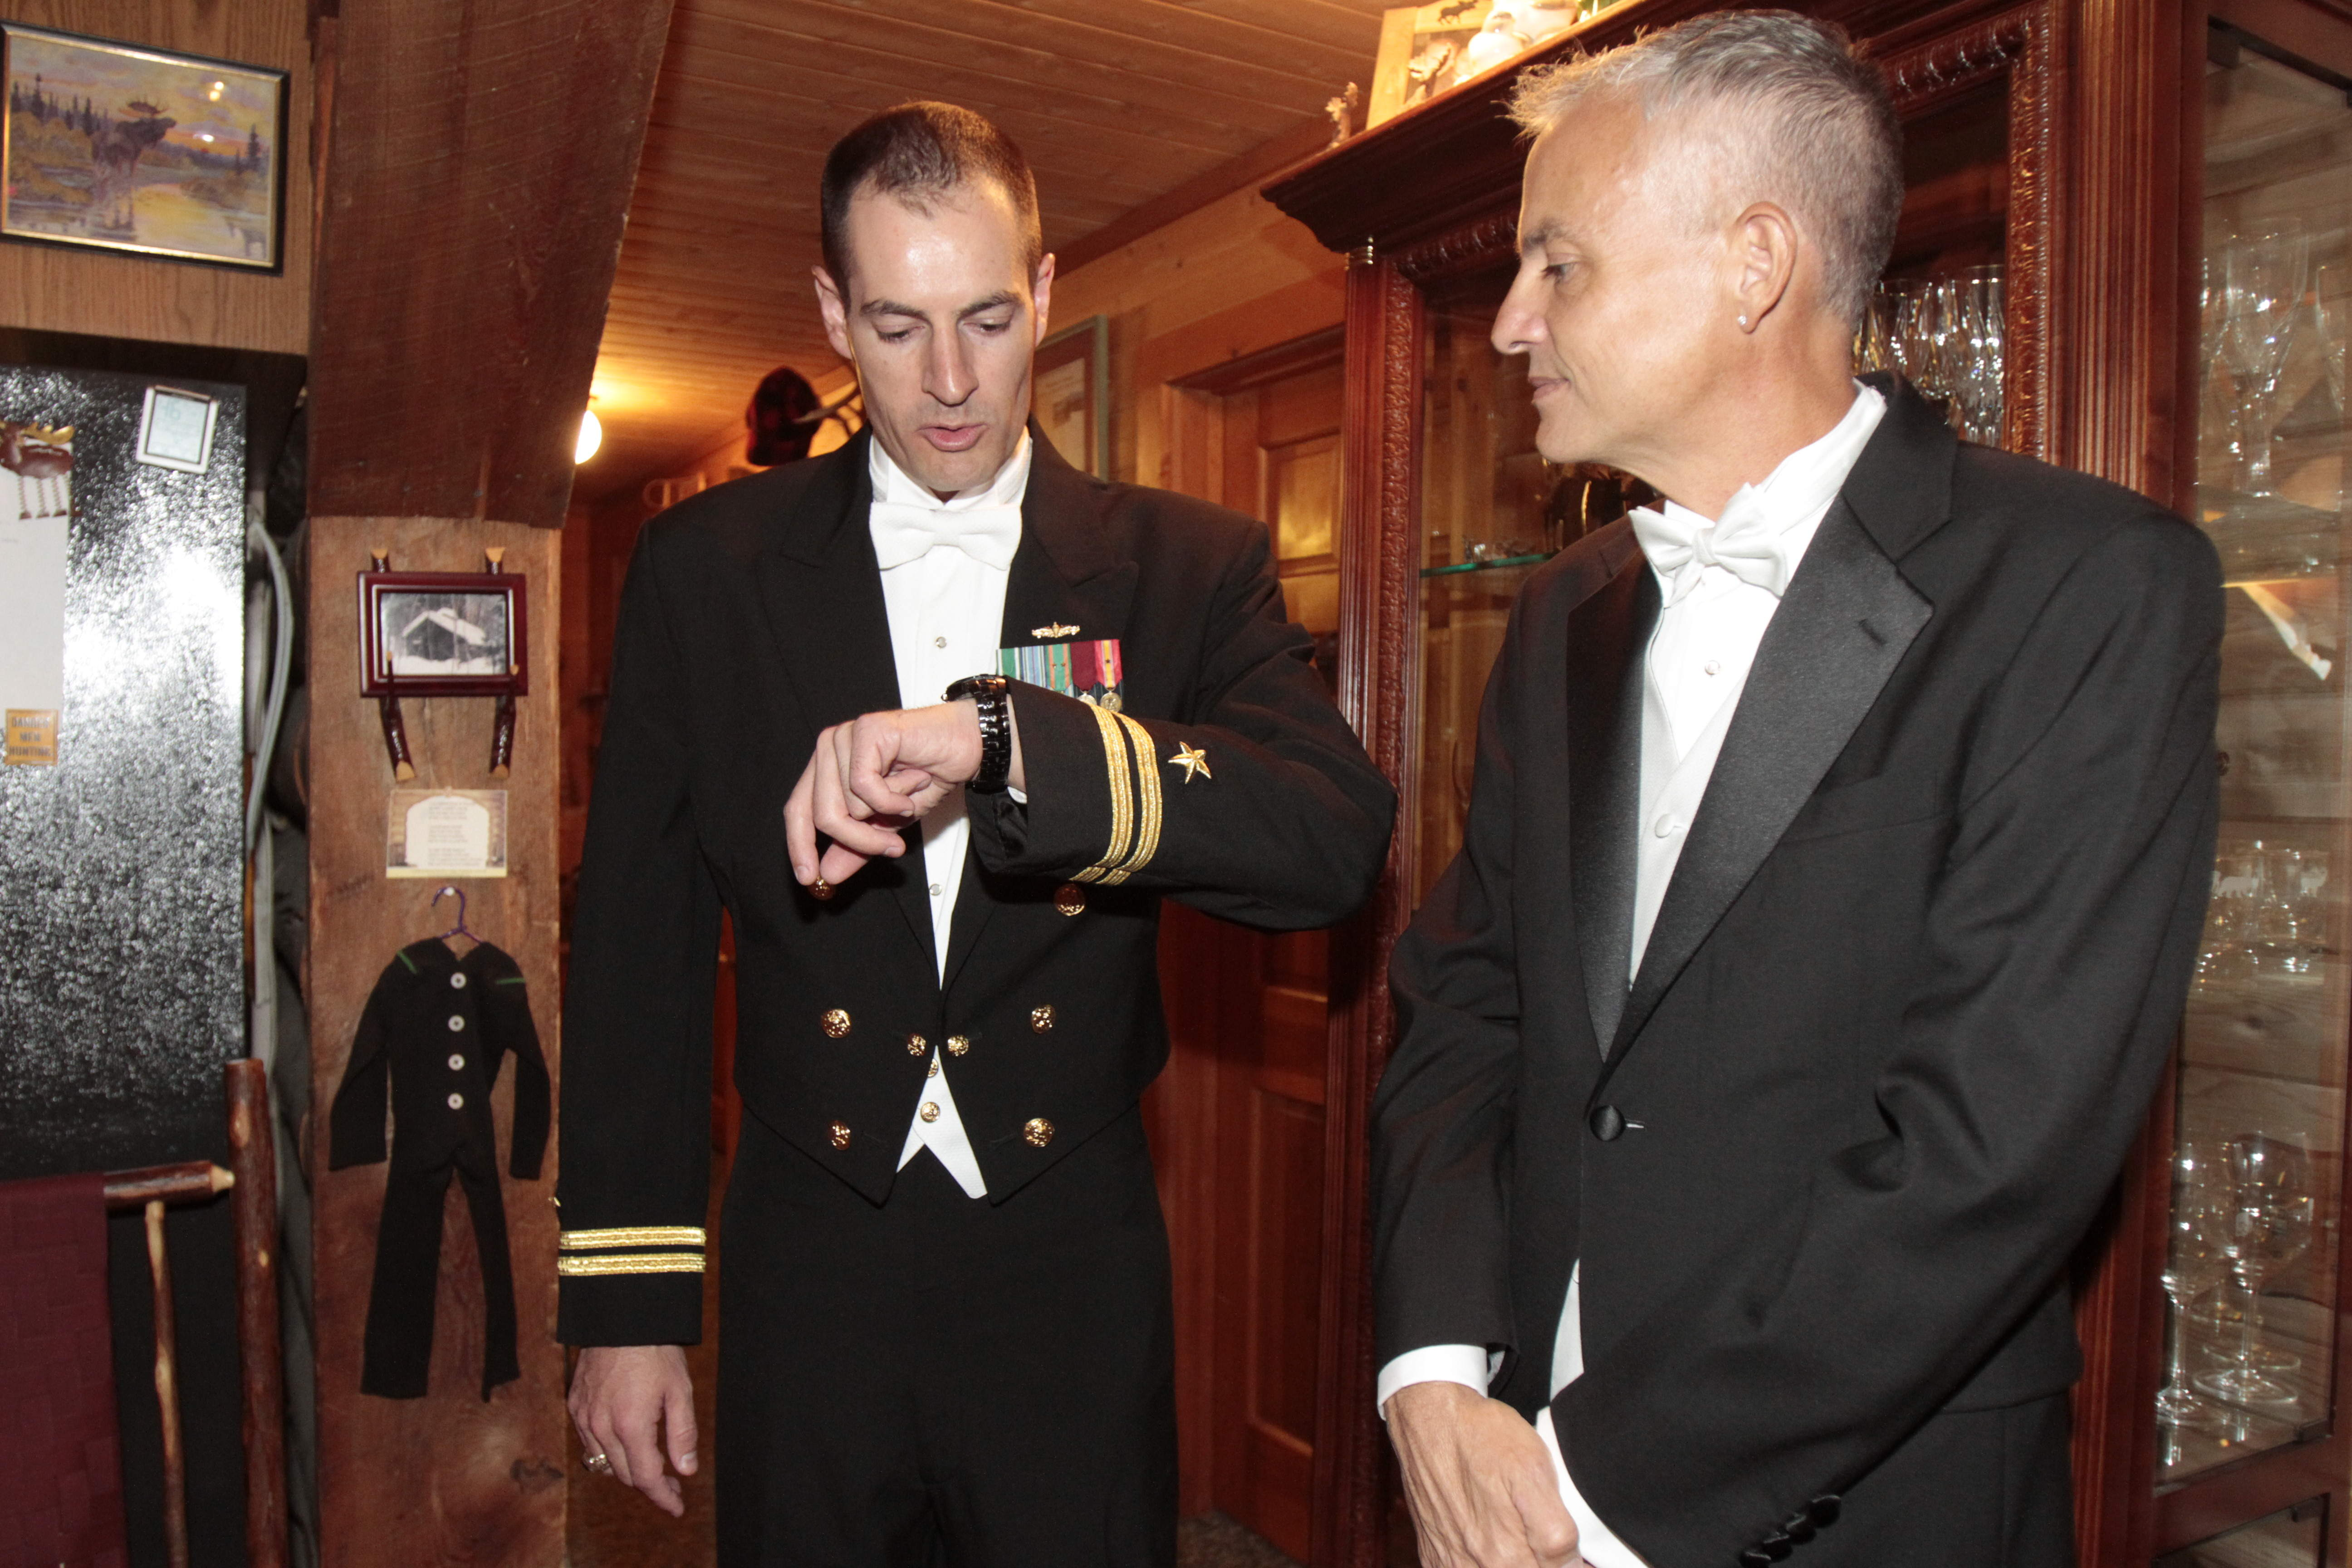 Greg Trulson, Justice of the Peace, Officiant, First gay military wedding, Moose Meadow Lodge